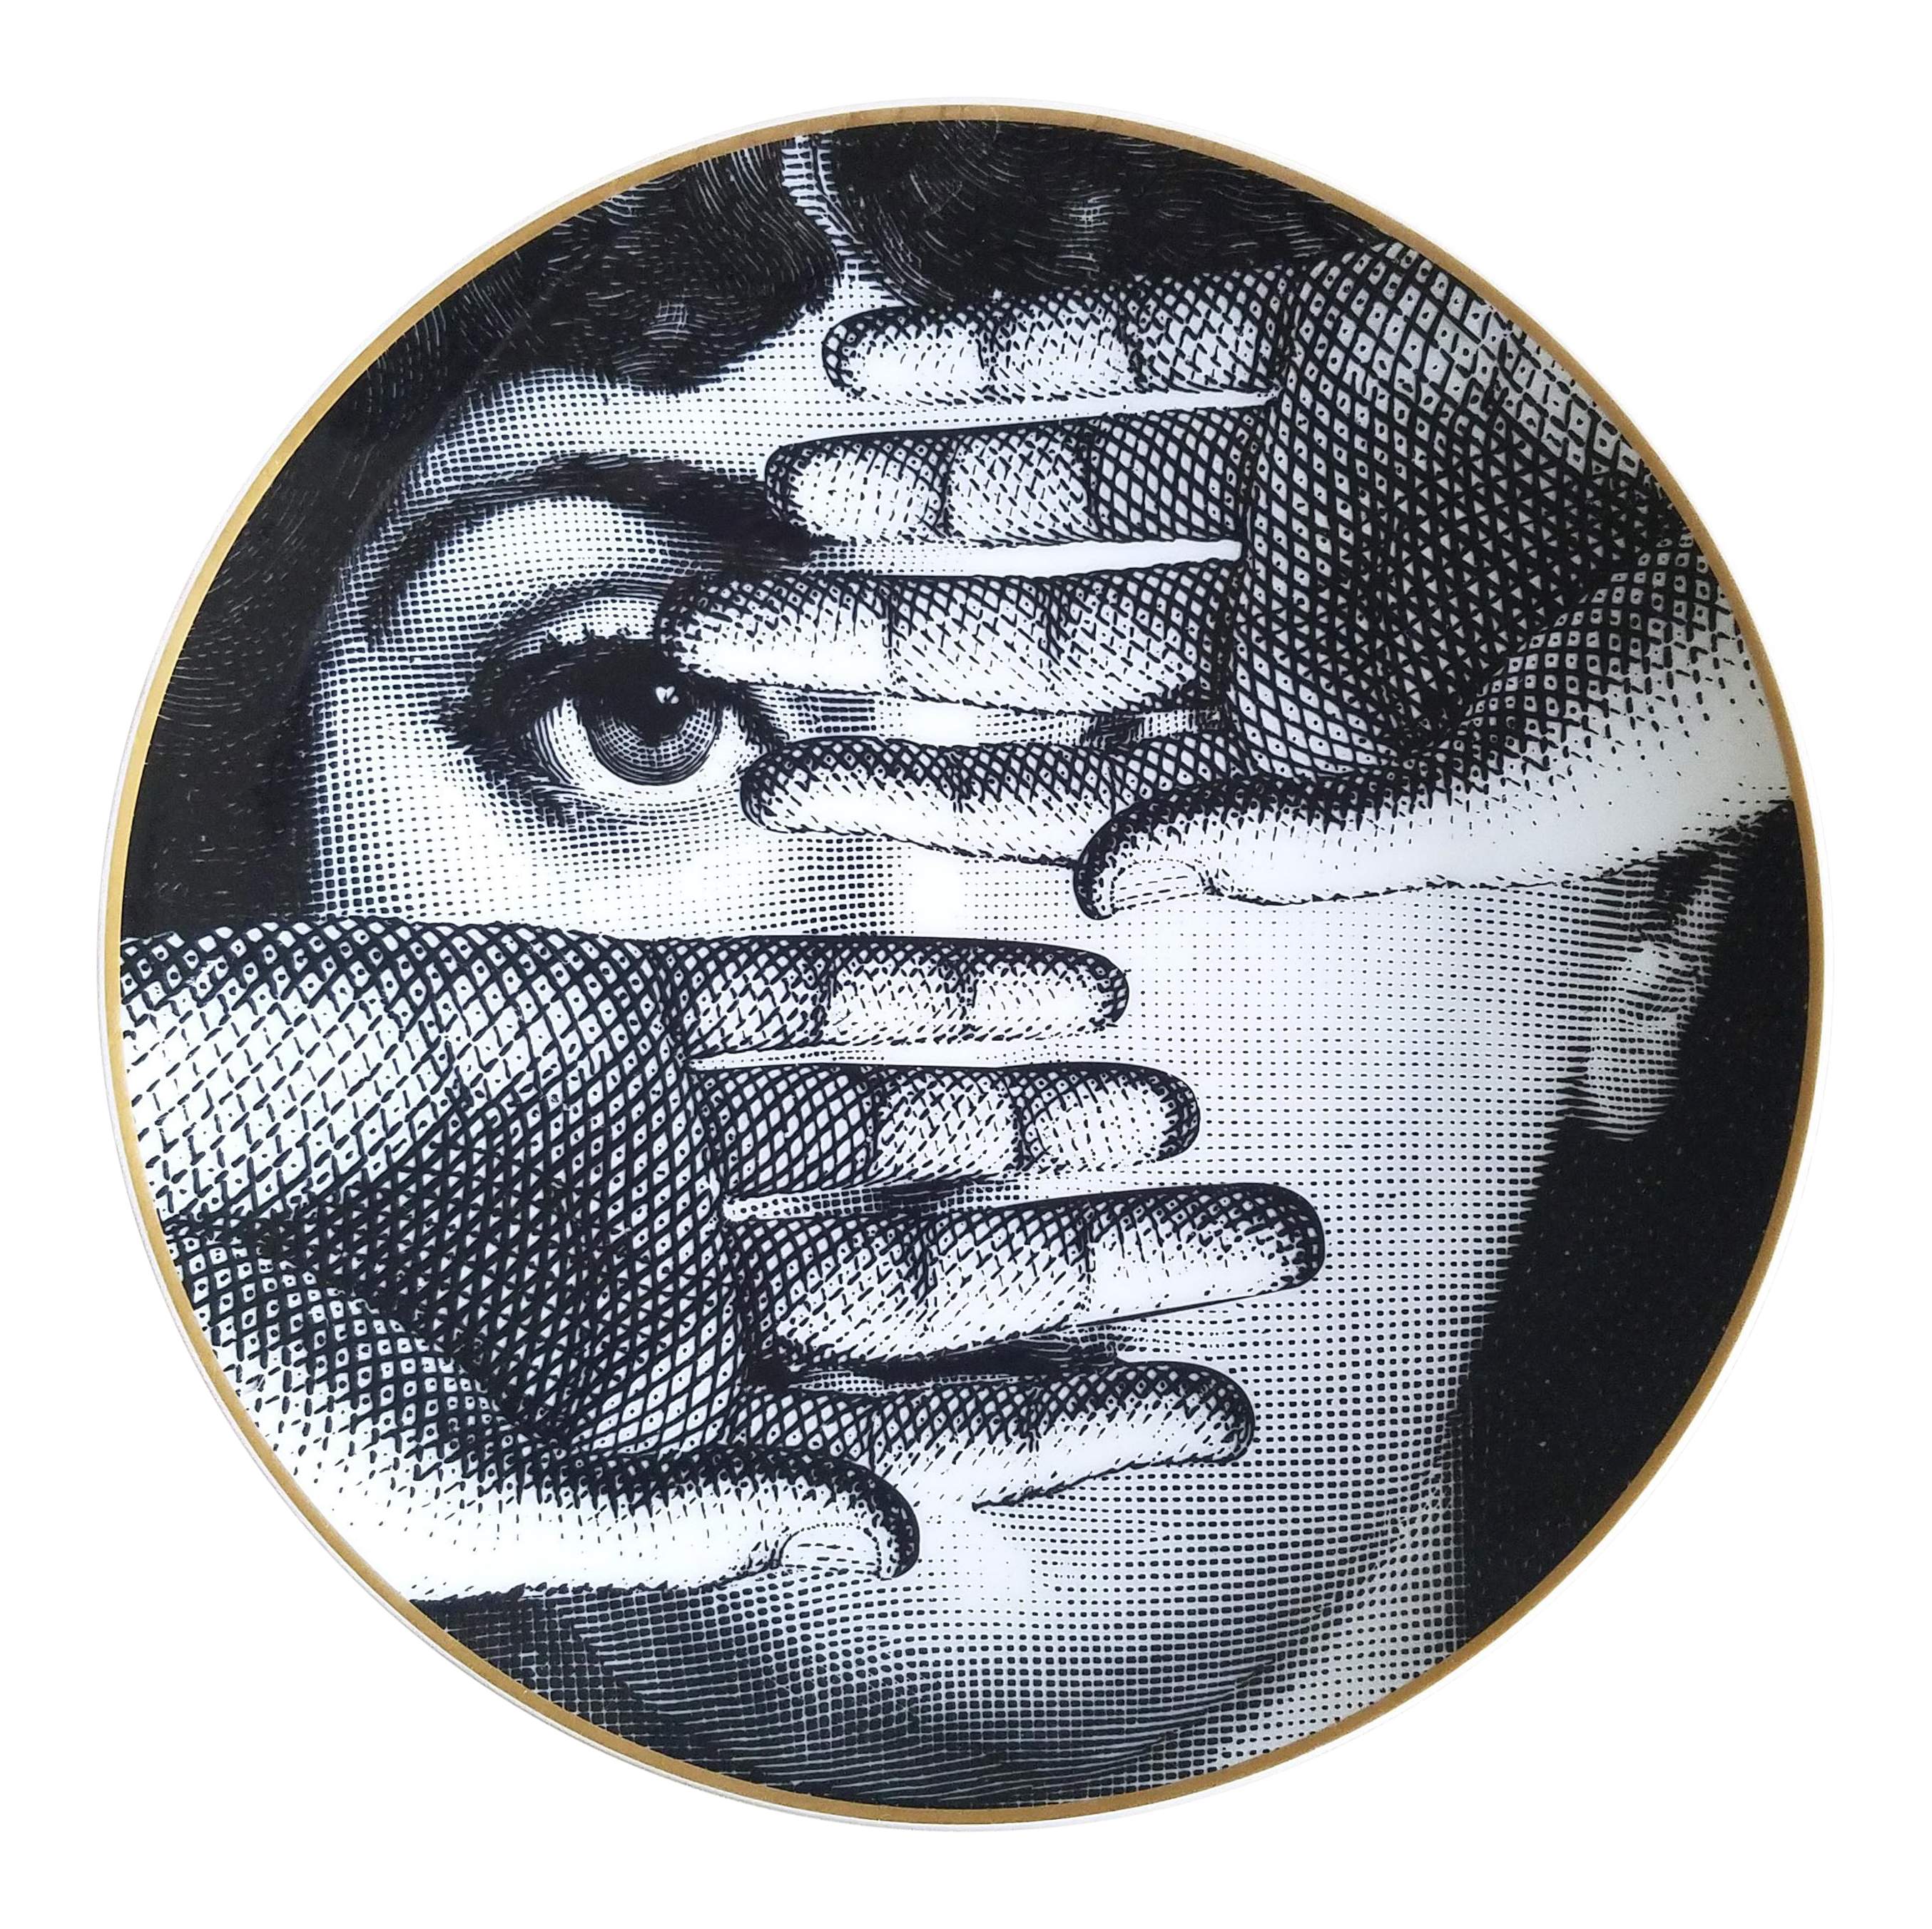 Vintage Fornasetti Porcelain Plate For Rosenthal Chairish